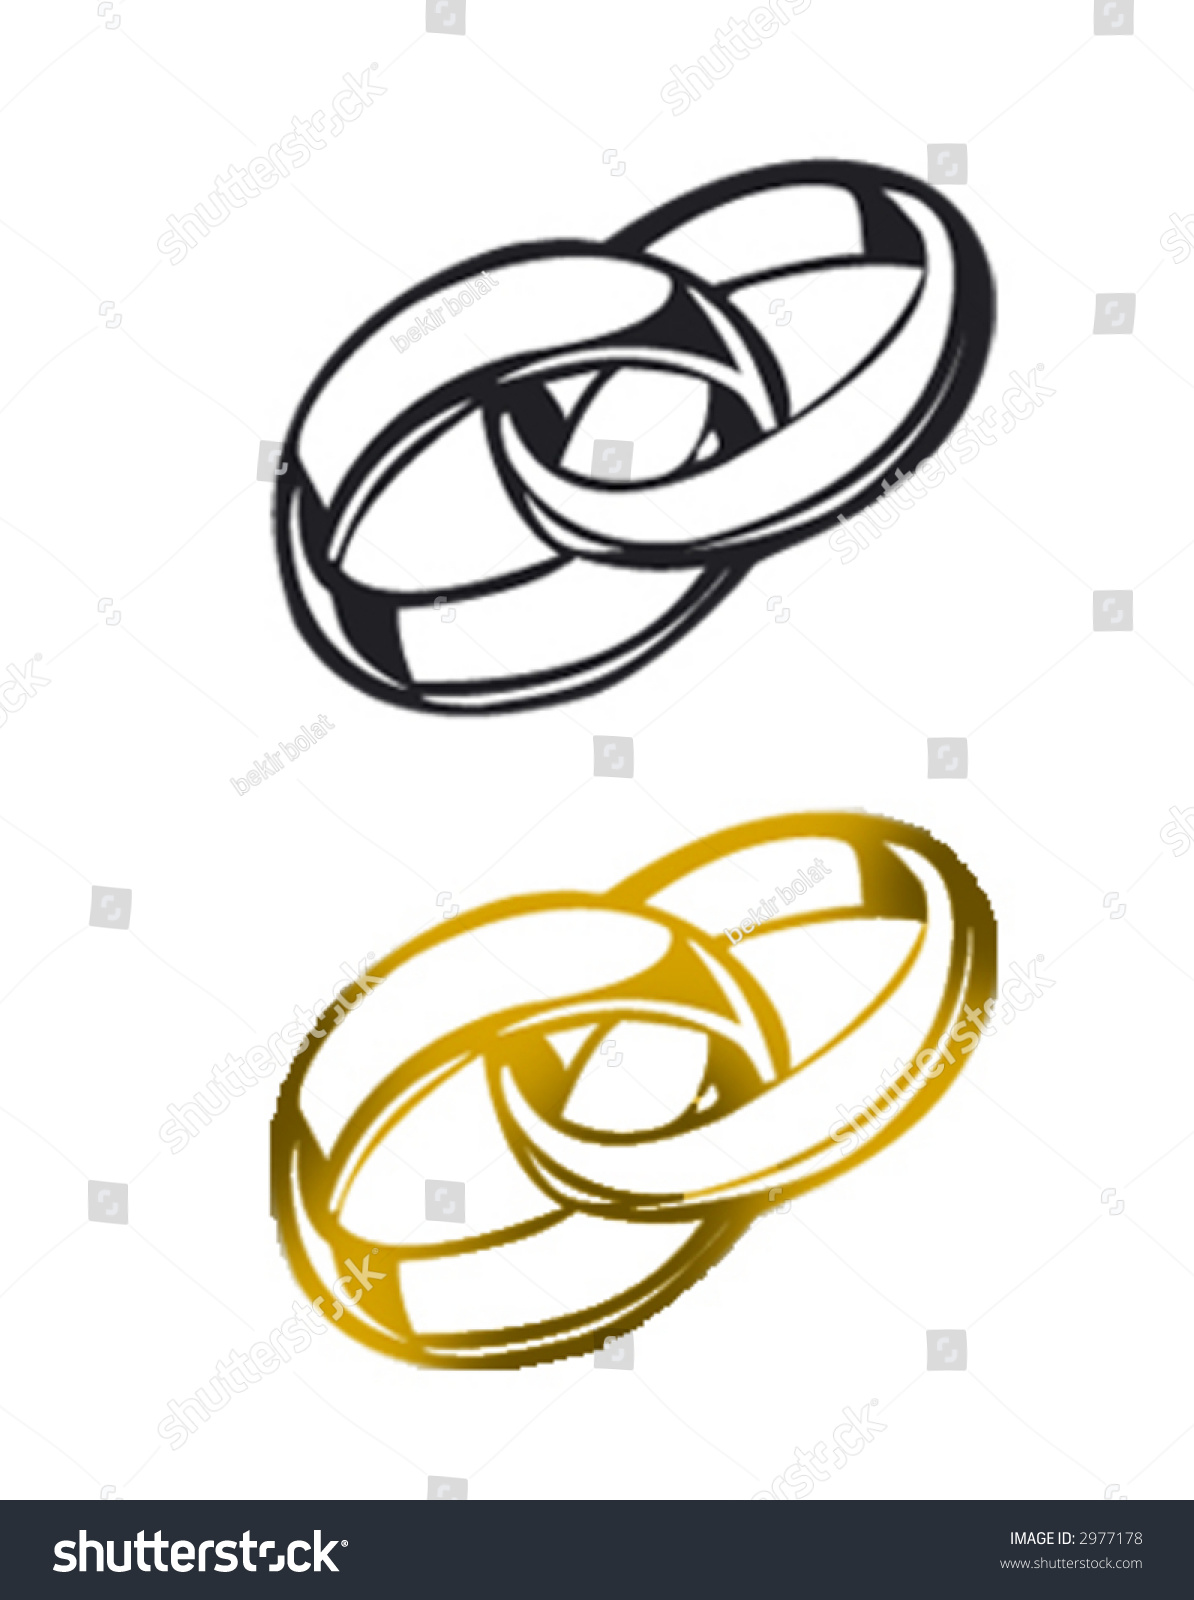 engagement ring vector - photo #23